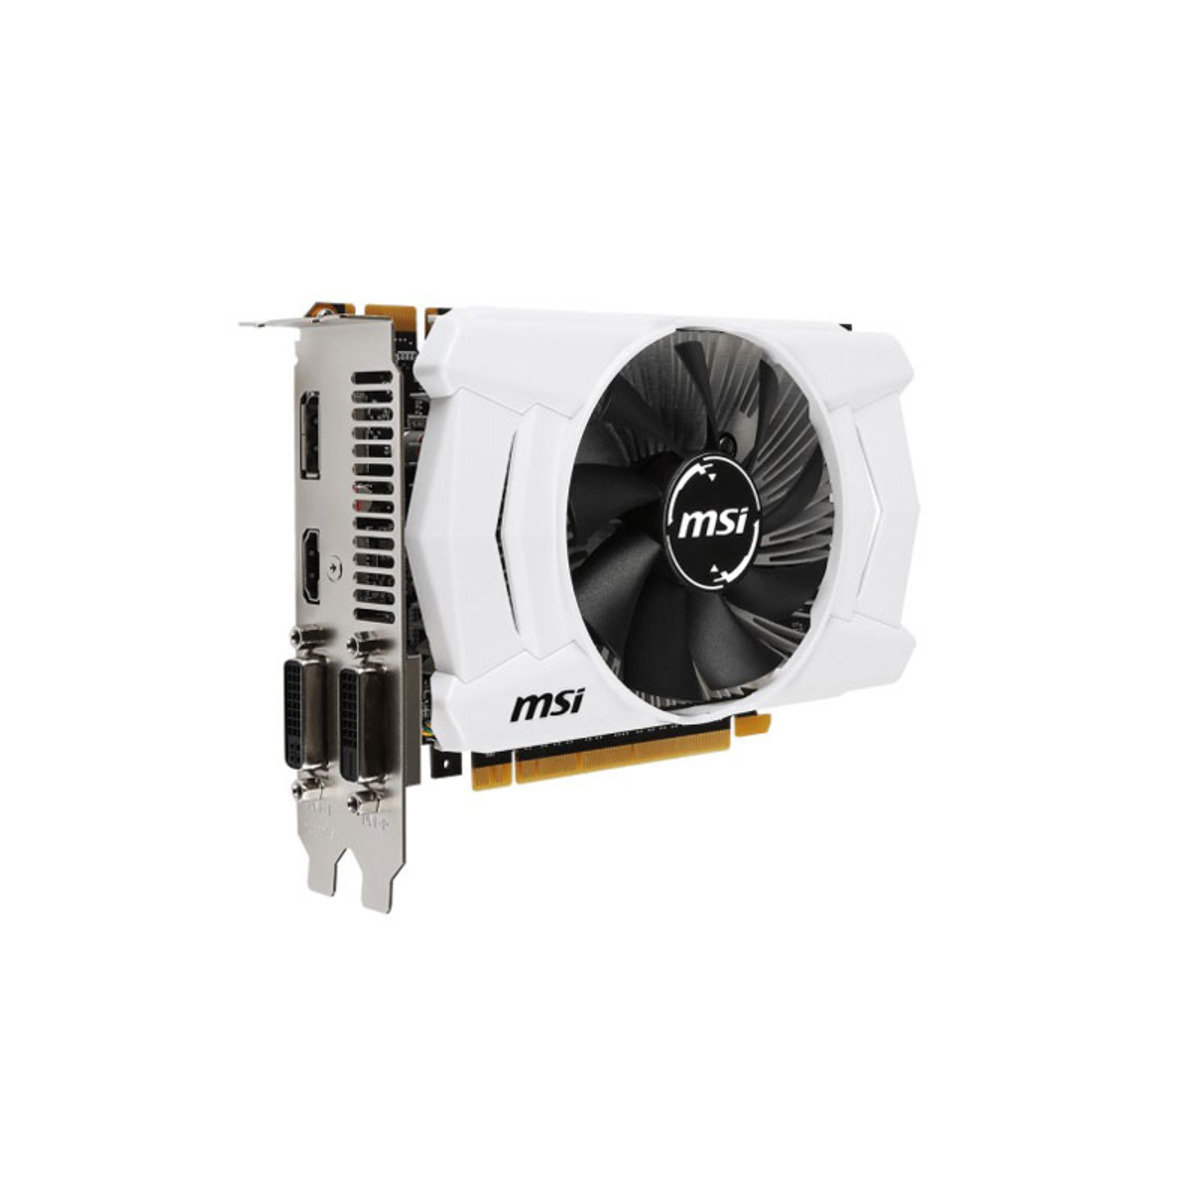 GTX950 2GB GDDR5 PCI-E 獨立顯示卡 GTX 950 2GD5 OC